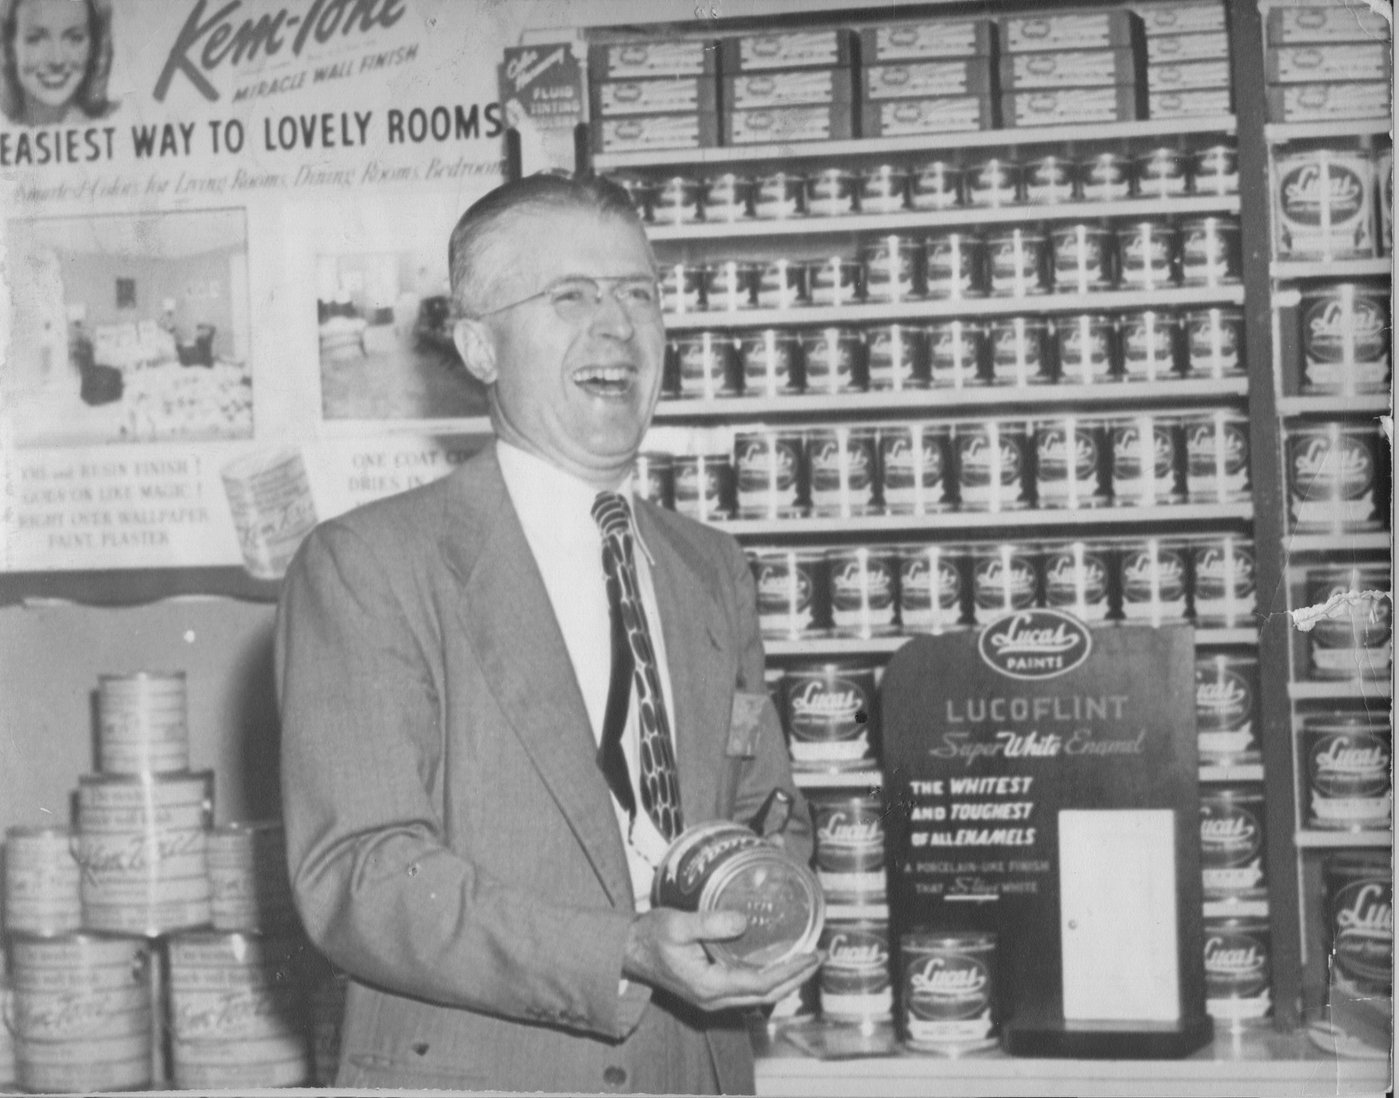 Arnold Gerberding left his job with a small wholesaler in Indiana, Auburn Hardware, to form Hardware Wholesalers Inc. as a dealer-owned cooperative in June 1945. Nearly half the initial members were LBM retailers, and this close mix of hardware and LBM business remains a defining characteristic of the company.